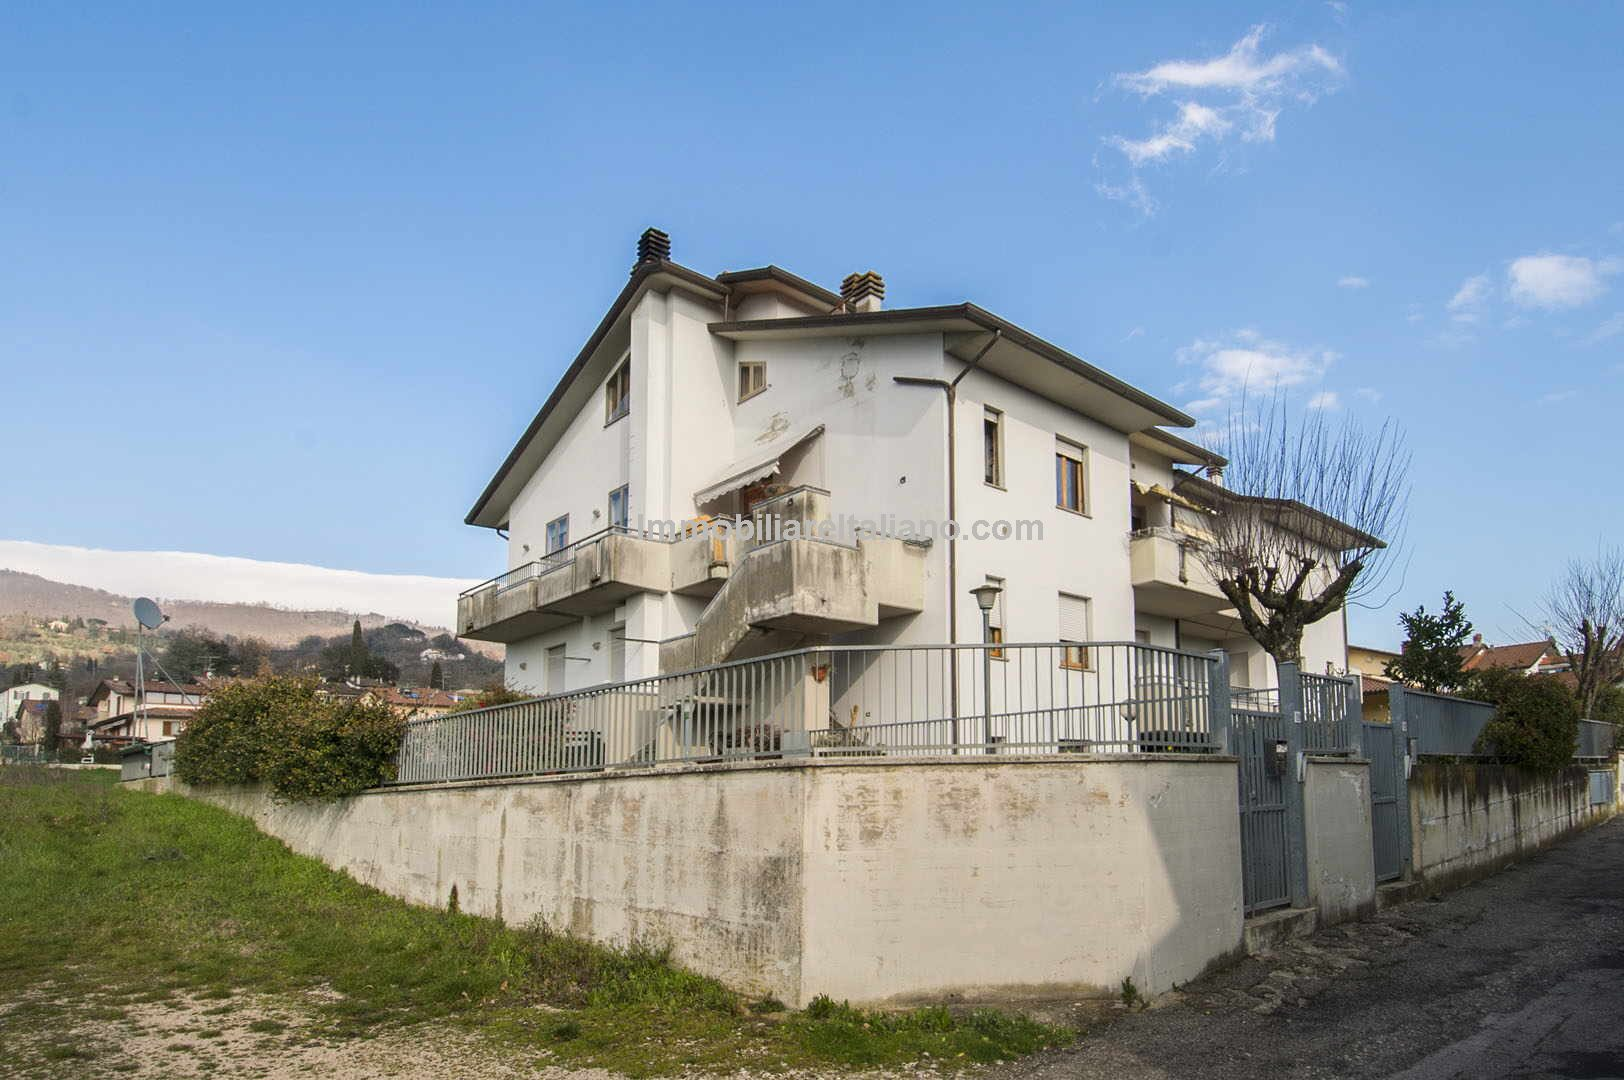 This Tuscany real estate comprises a large 3 bed (possible for an additional bedroom) apartment with 4 terraces, garage and garden, just a 5-minute drive or 15-minute walk into the centre of Sansepolcro.